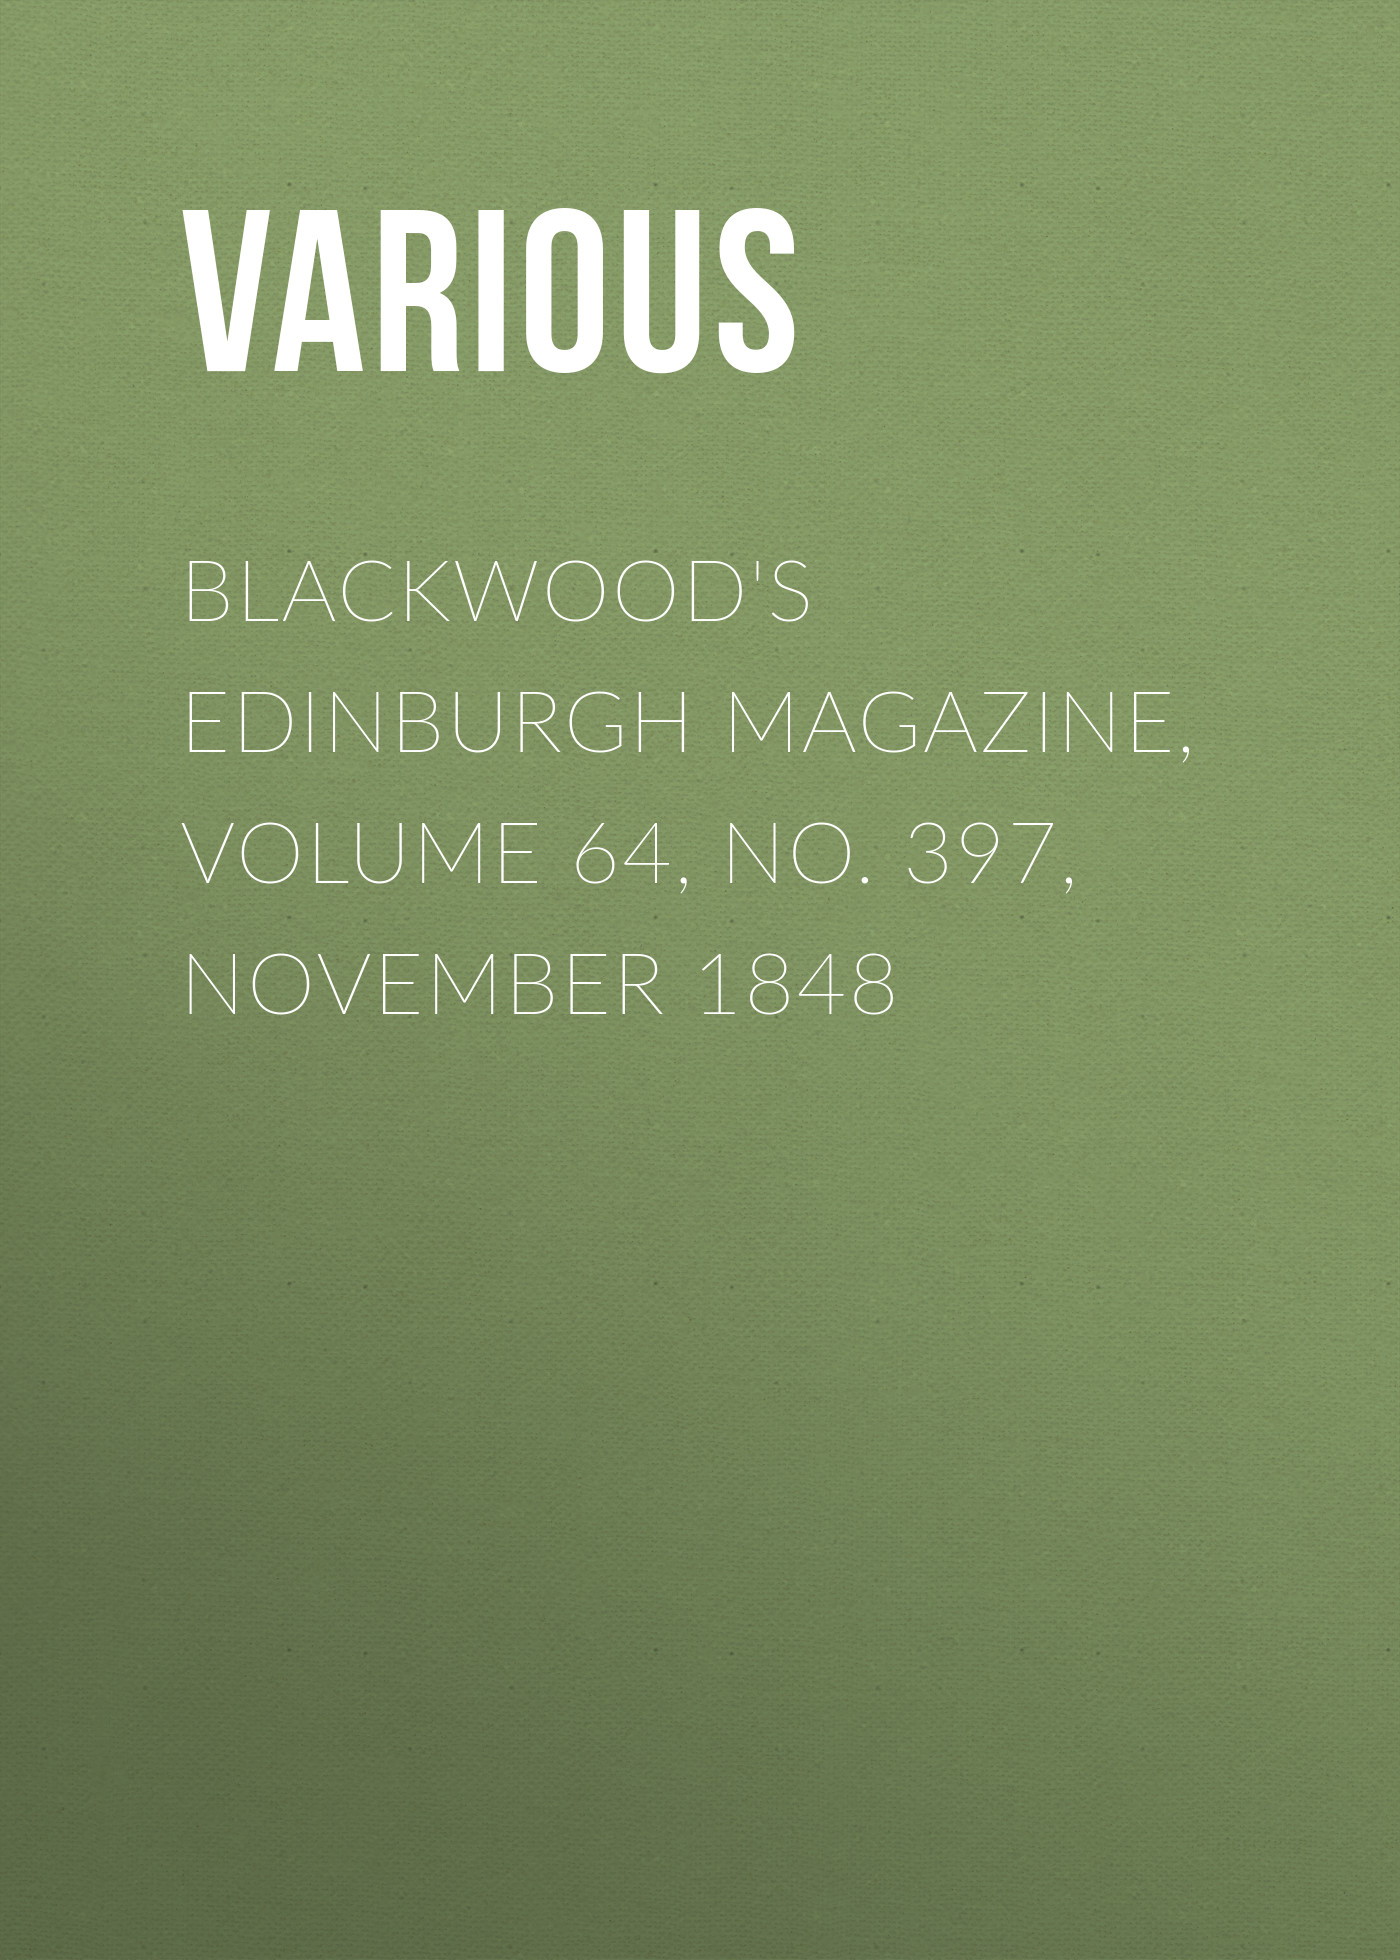 Various Blackwood's Edinburgh Magazine, Volume 64, No. 397, November 1848